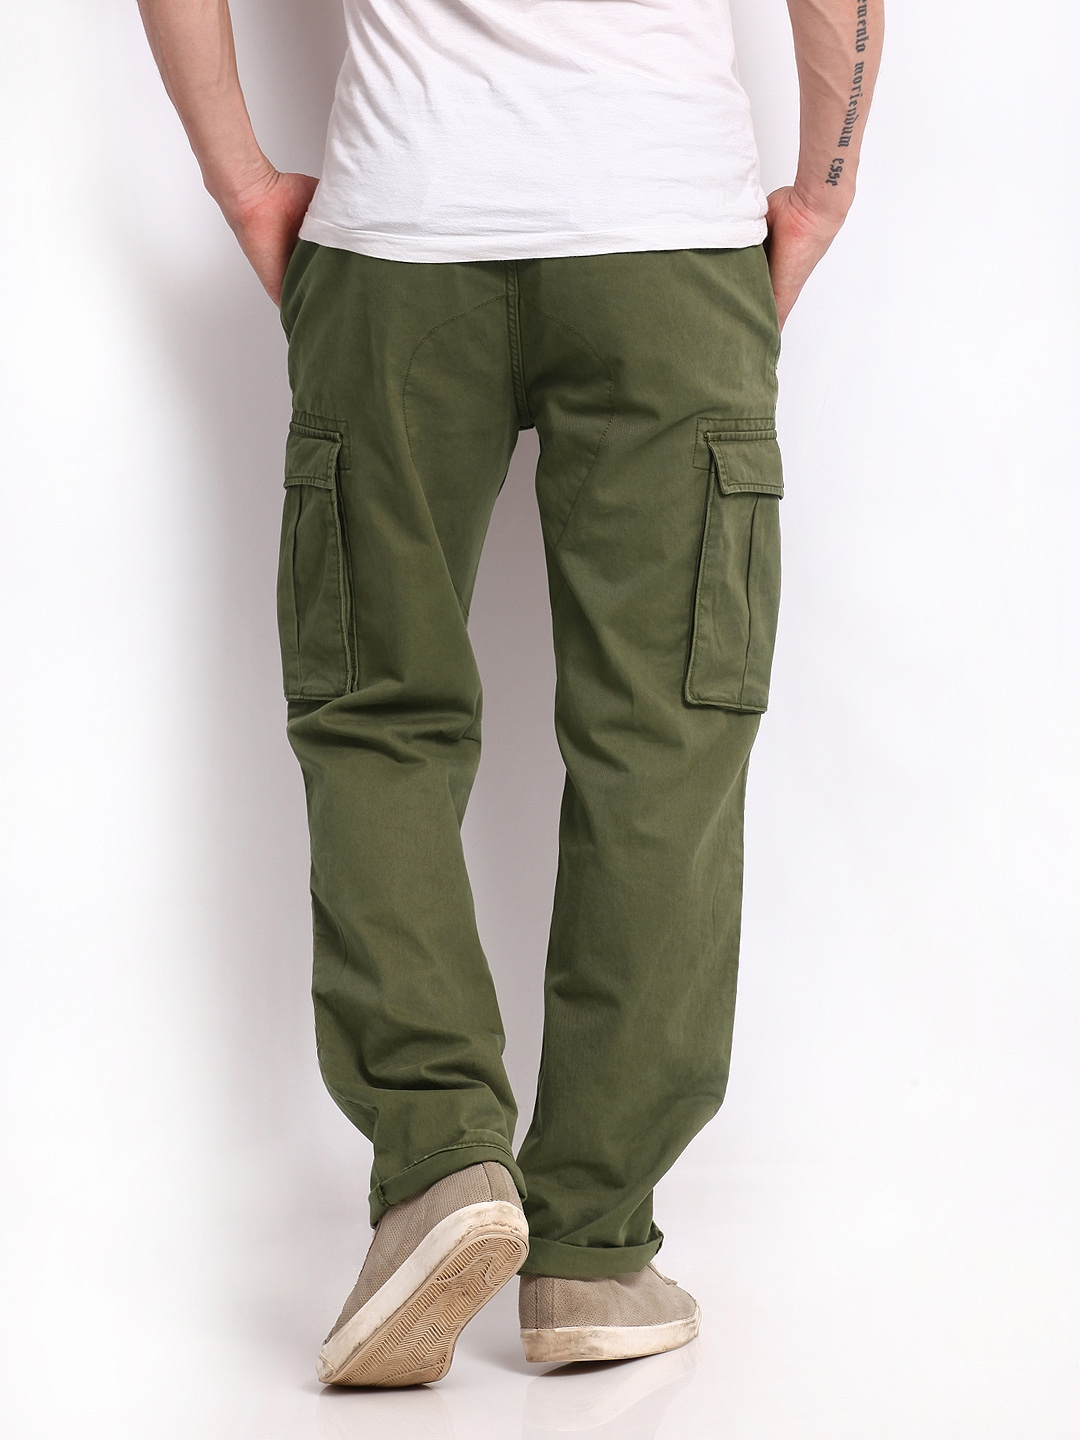 Levis-Men-Olive-Green-Relaxed-Fit-Cargo-Trousers_b88fa34038bfd30713e6e27220bcbad2_images_mini.jpg